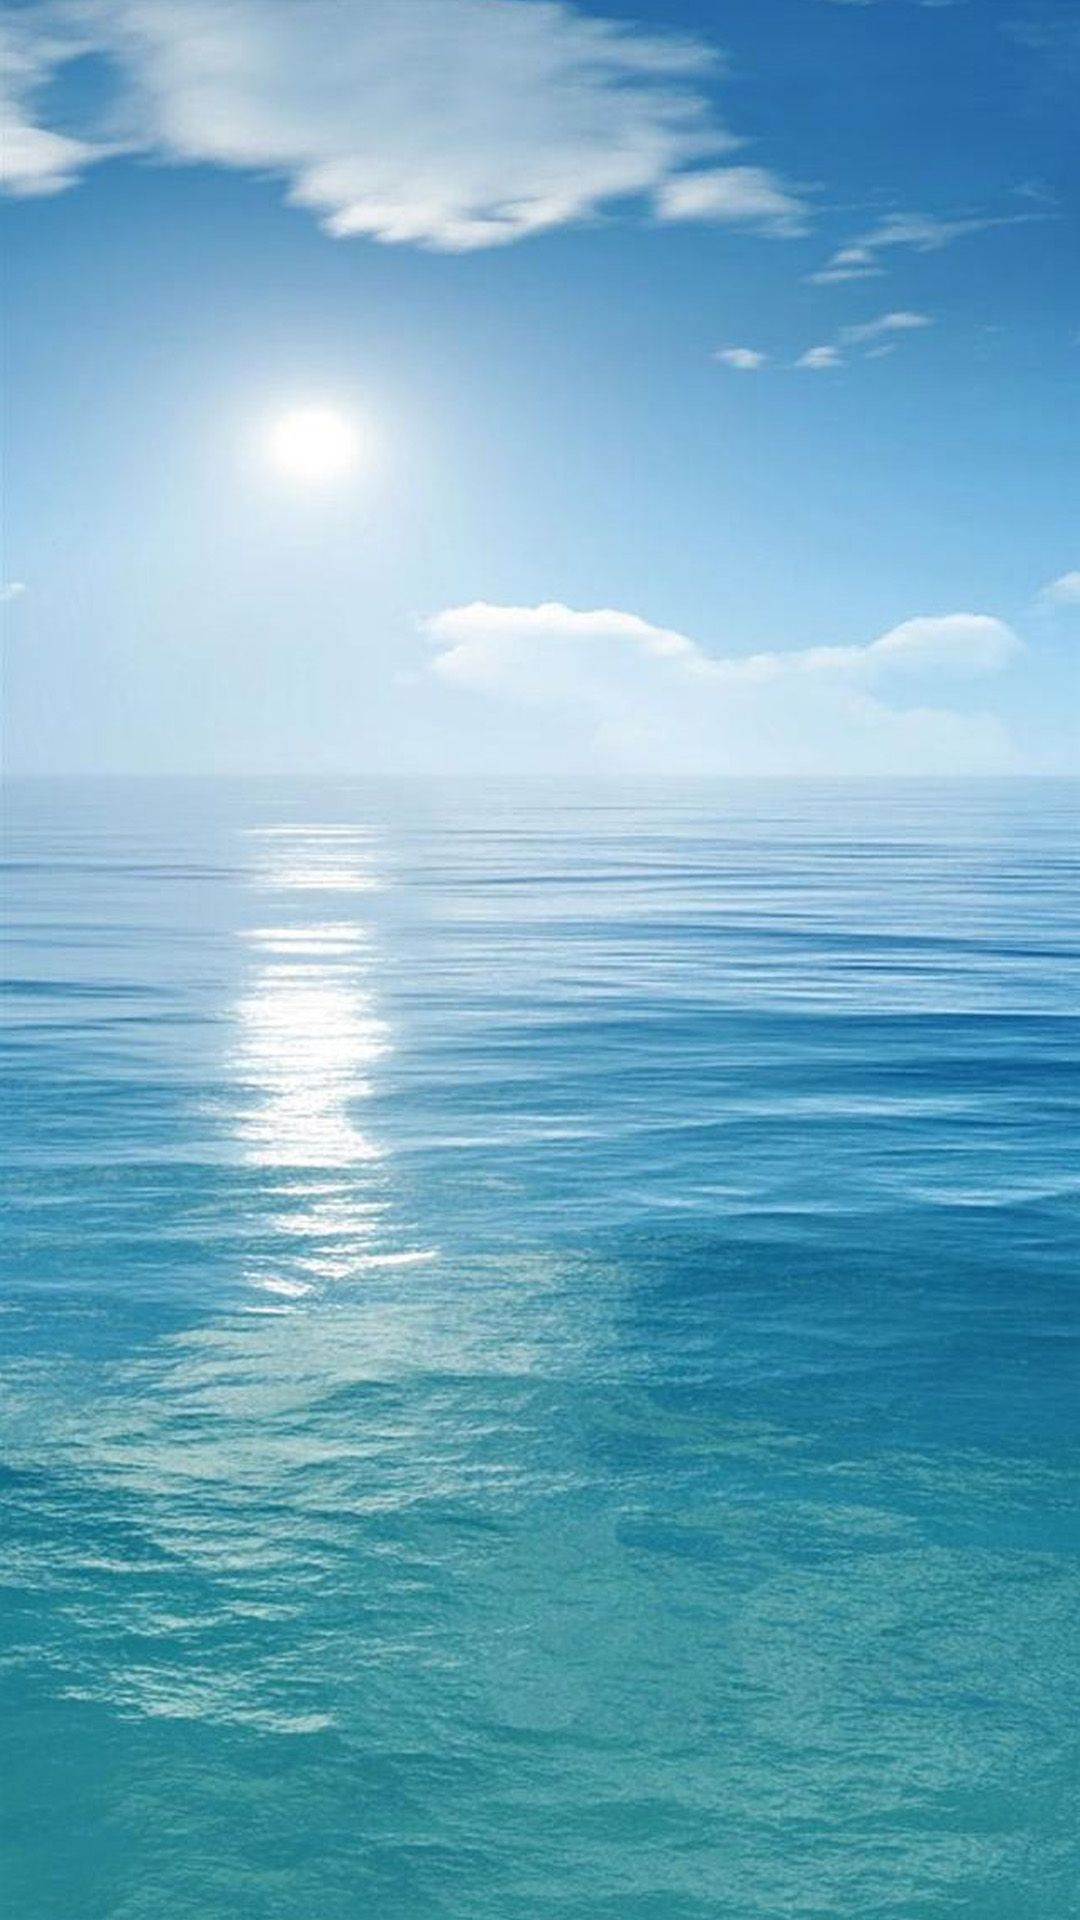 Samsung Galaxy S5 Hd Wallpaper Sea And Sun Samsung Galaxy